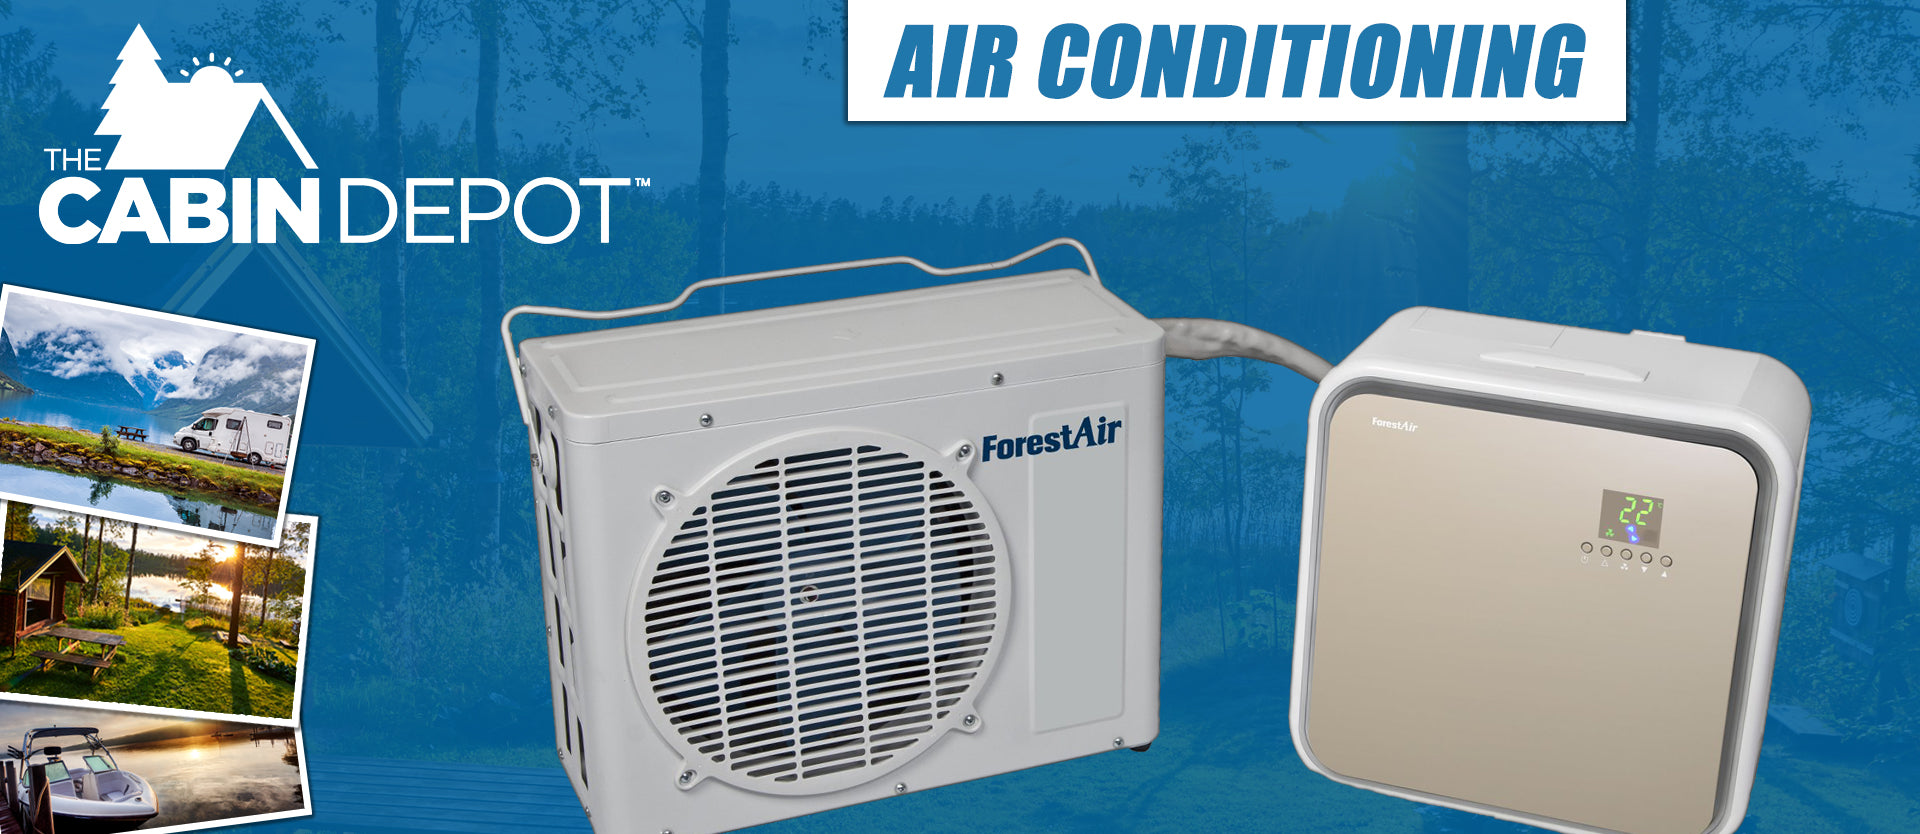 Air Conditioning Off Grid The Cabin Depot ™ Canada